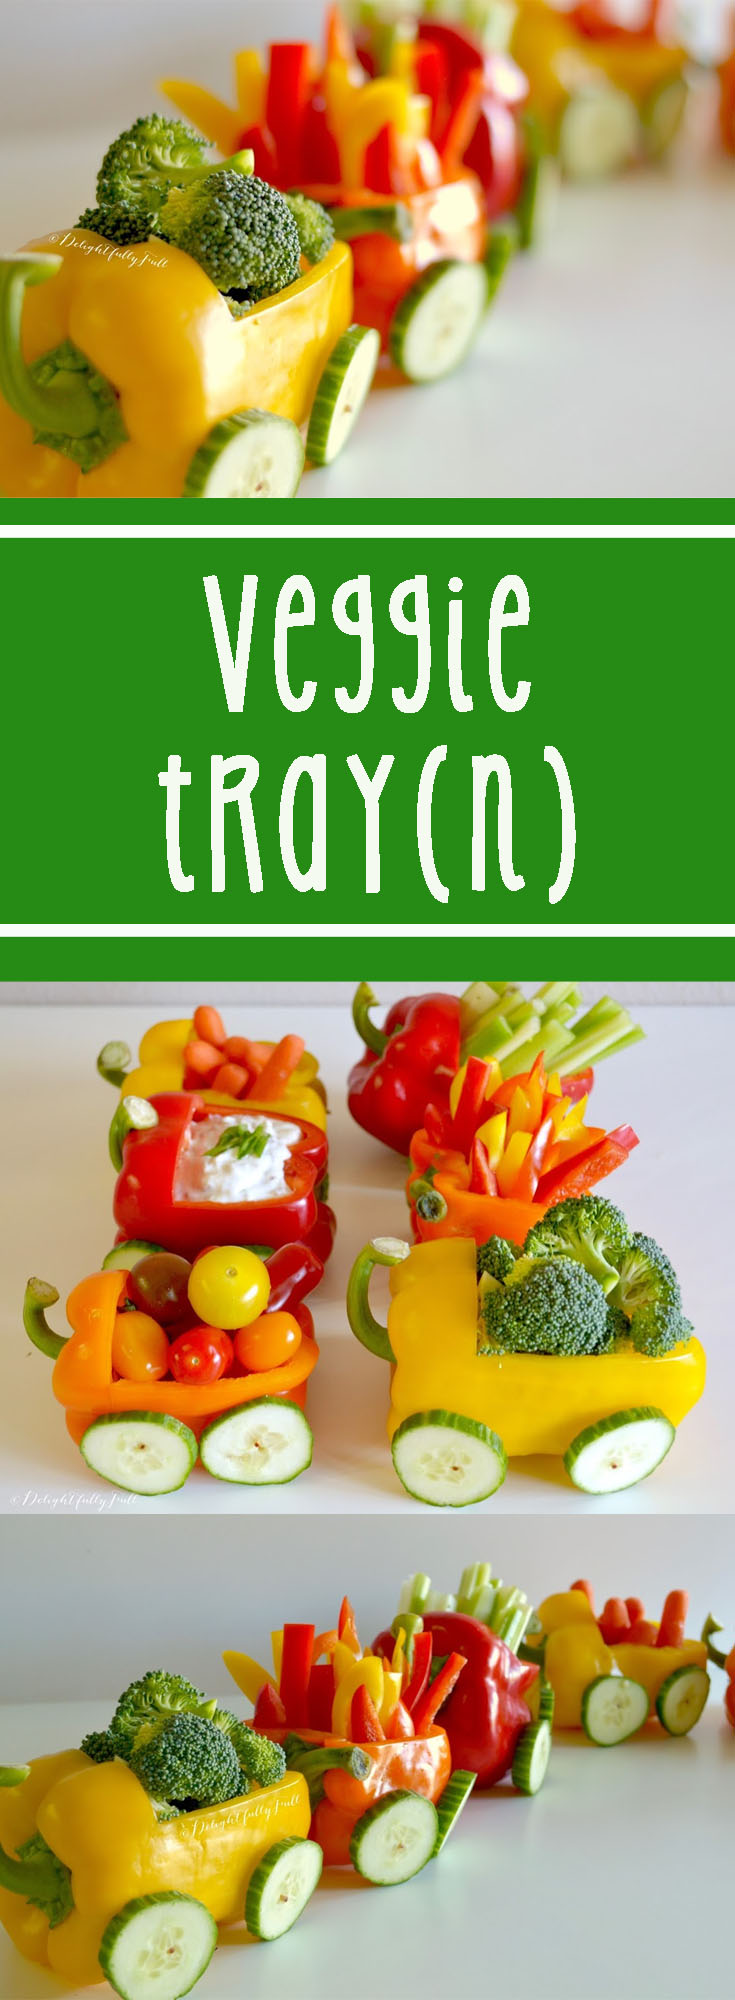 A Veggie Tray Served Up In The Form Of A Train! Perfect For A Baby Shower,  Birthday, Office Party, Or Pretty Much Any Event (including Snack Time At  Home).